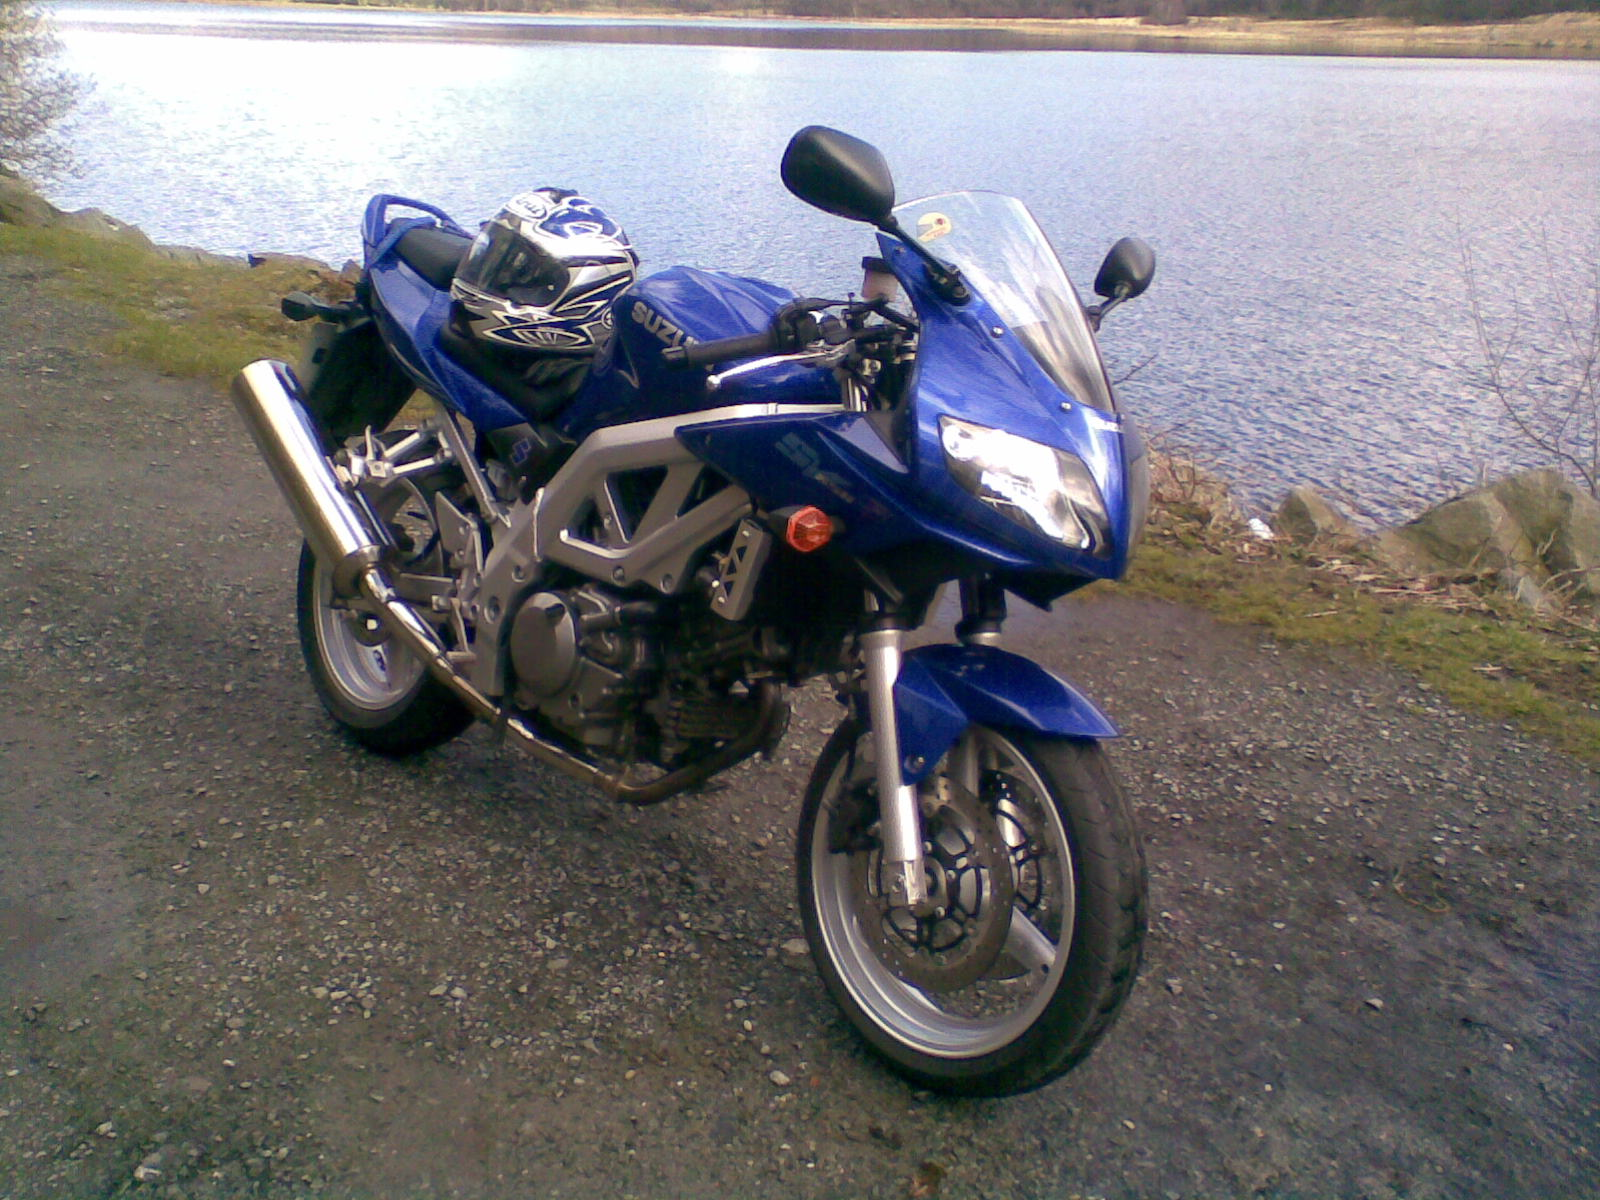 2008 suzuki sv 650 s pics specs and information. Black Bedroom Furniture Sets. Home Design Ideas